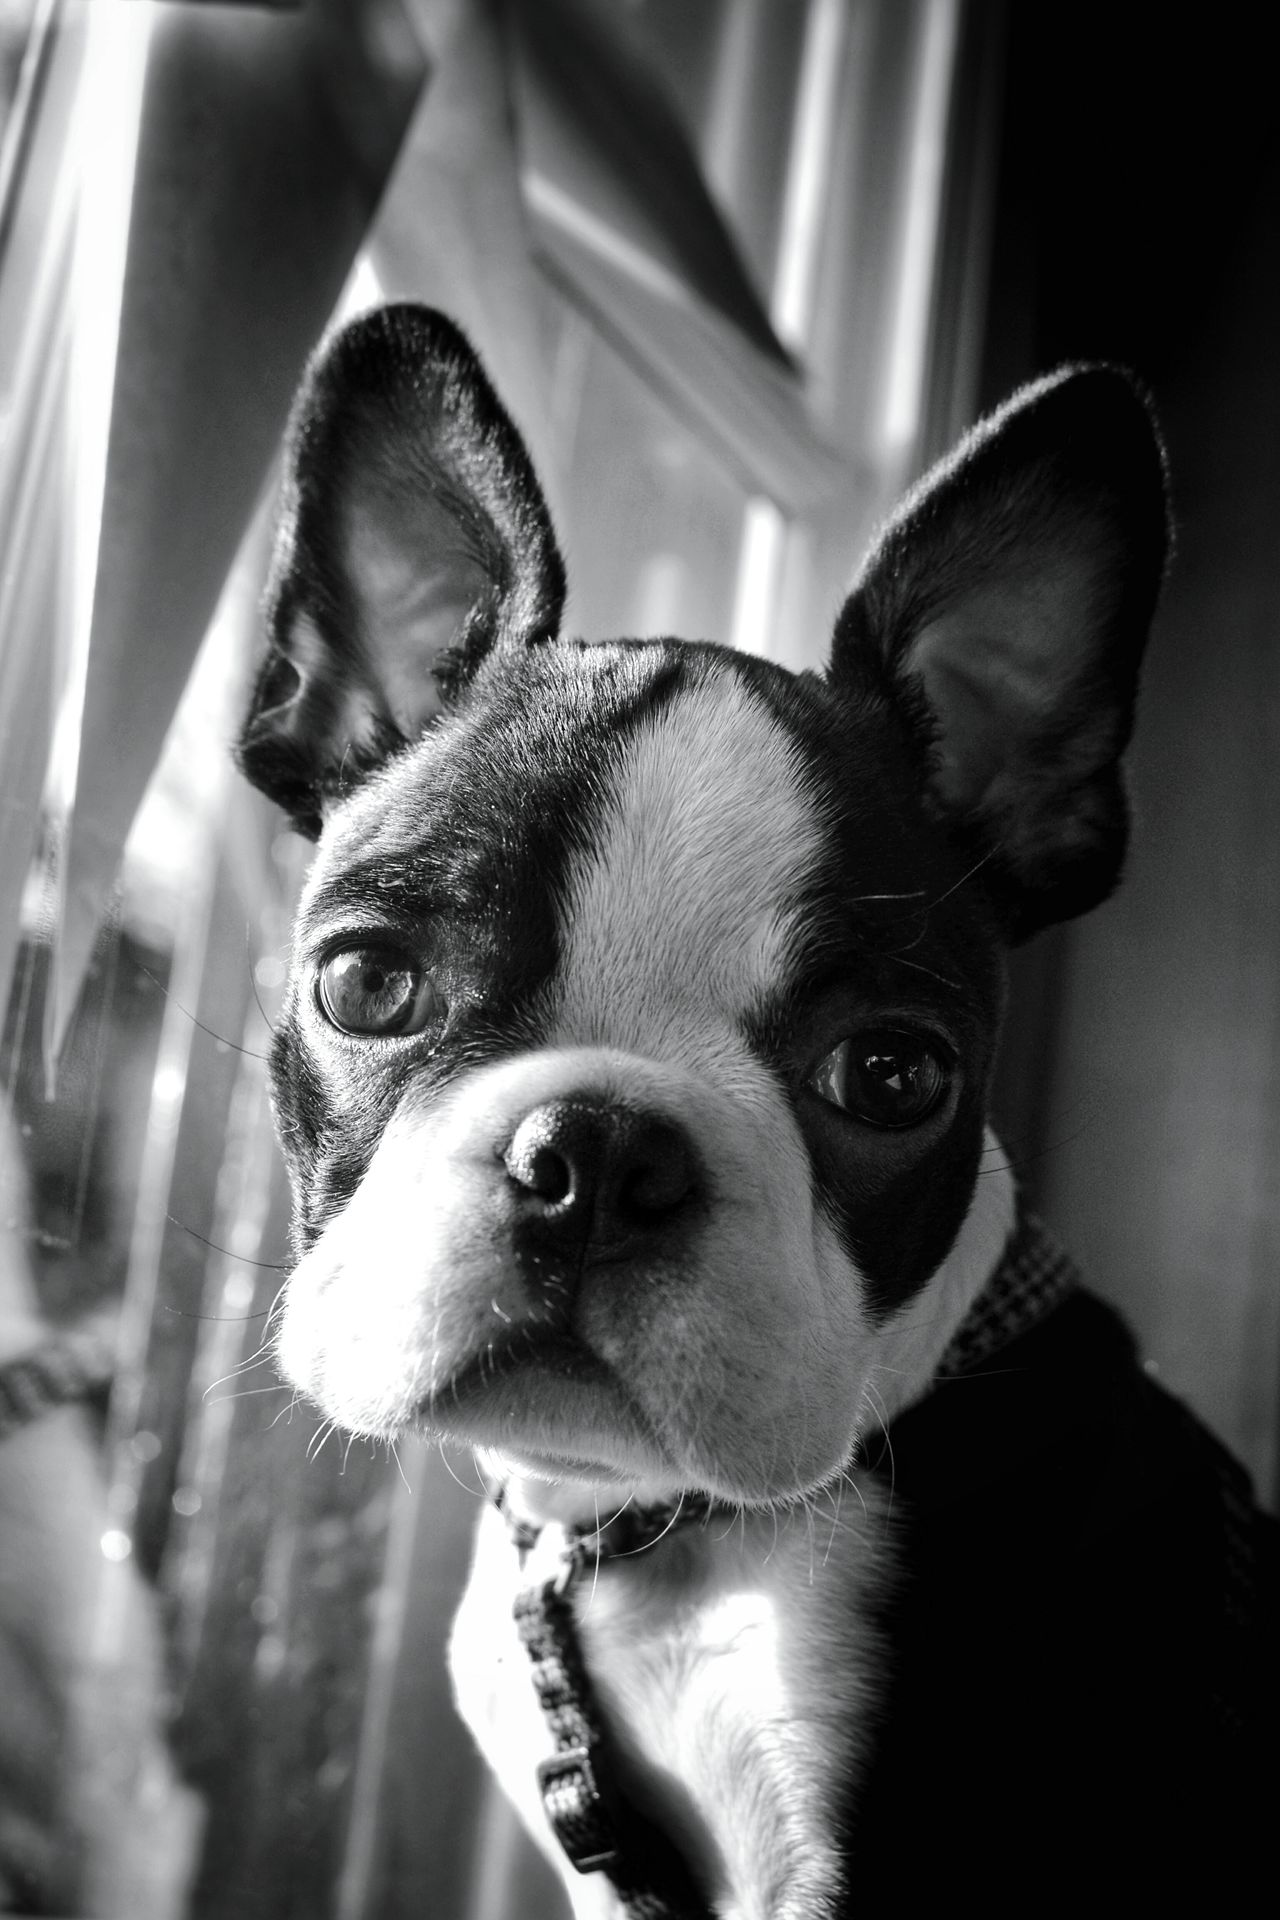 Domestic Animals Pets Animal Themes Dog One Animal Looking At Camera Portrait Close-up No People Boston Terrier Monochrome Photograhy Blackandwhite Photography EyeEm Black&white! Monochrome _ Collection Taking Photos Black & White Mypointofview Light And Shadow Dogportrait Blackandwhite Portrait Boston Terriers Boston Terrier American Gentleman. Boston Terrier, Cute, Pet, Best Friend